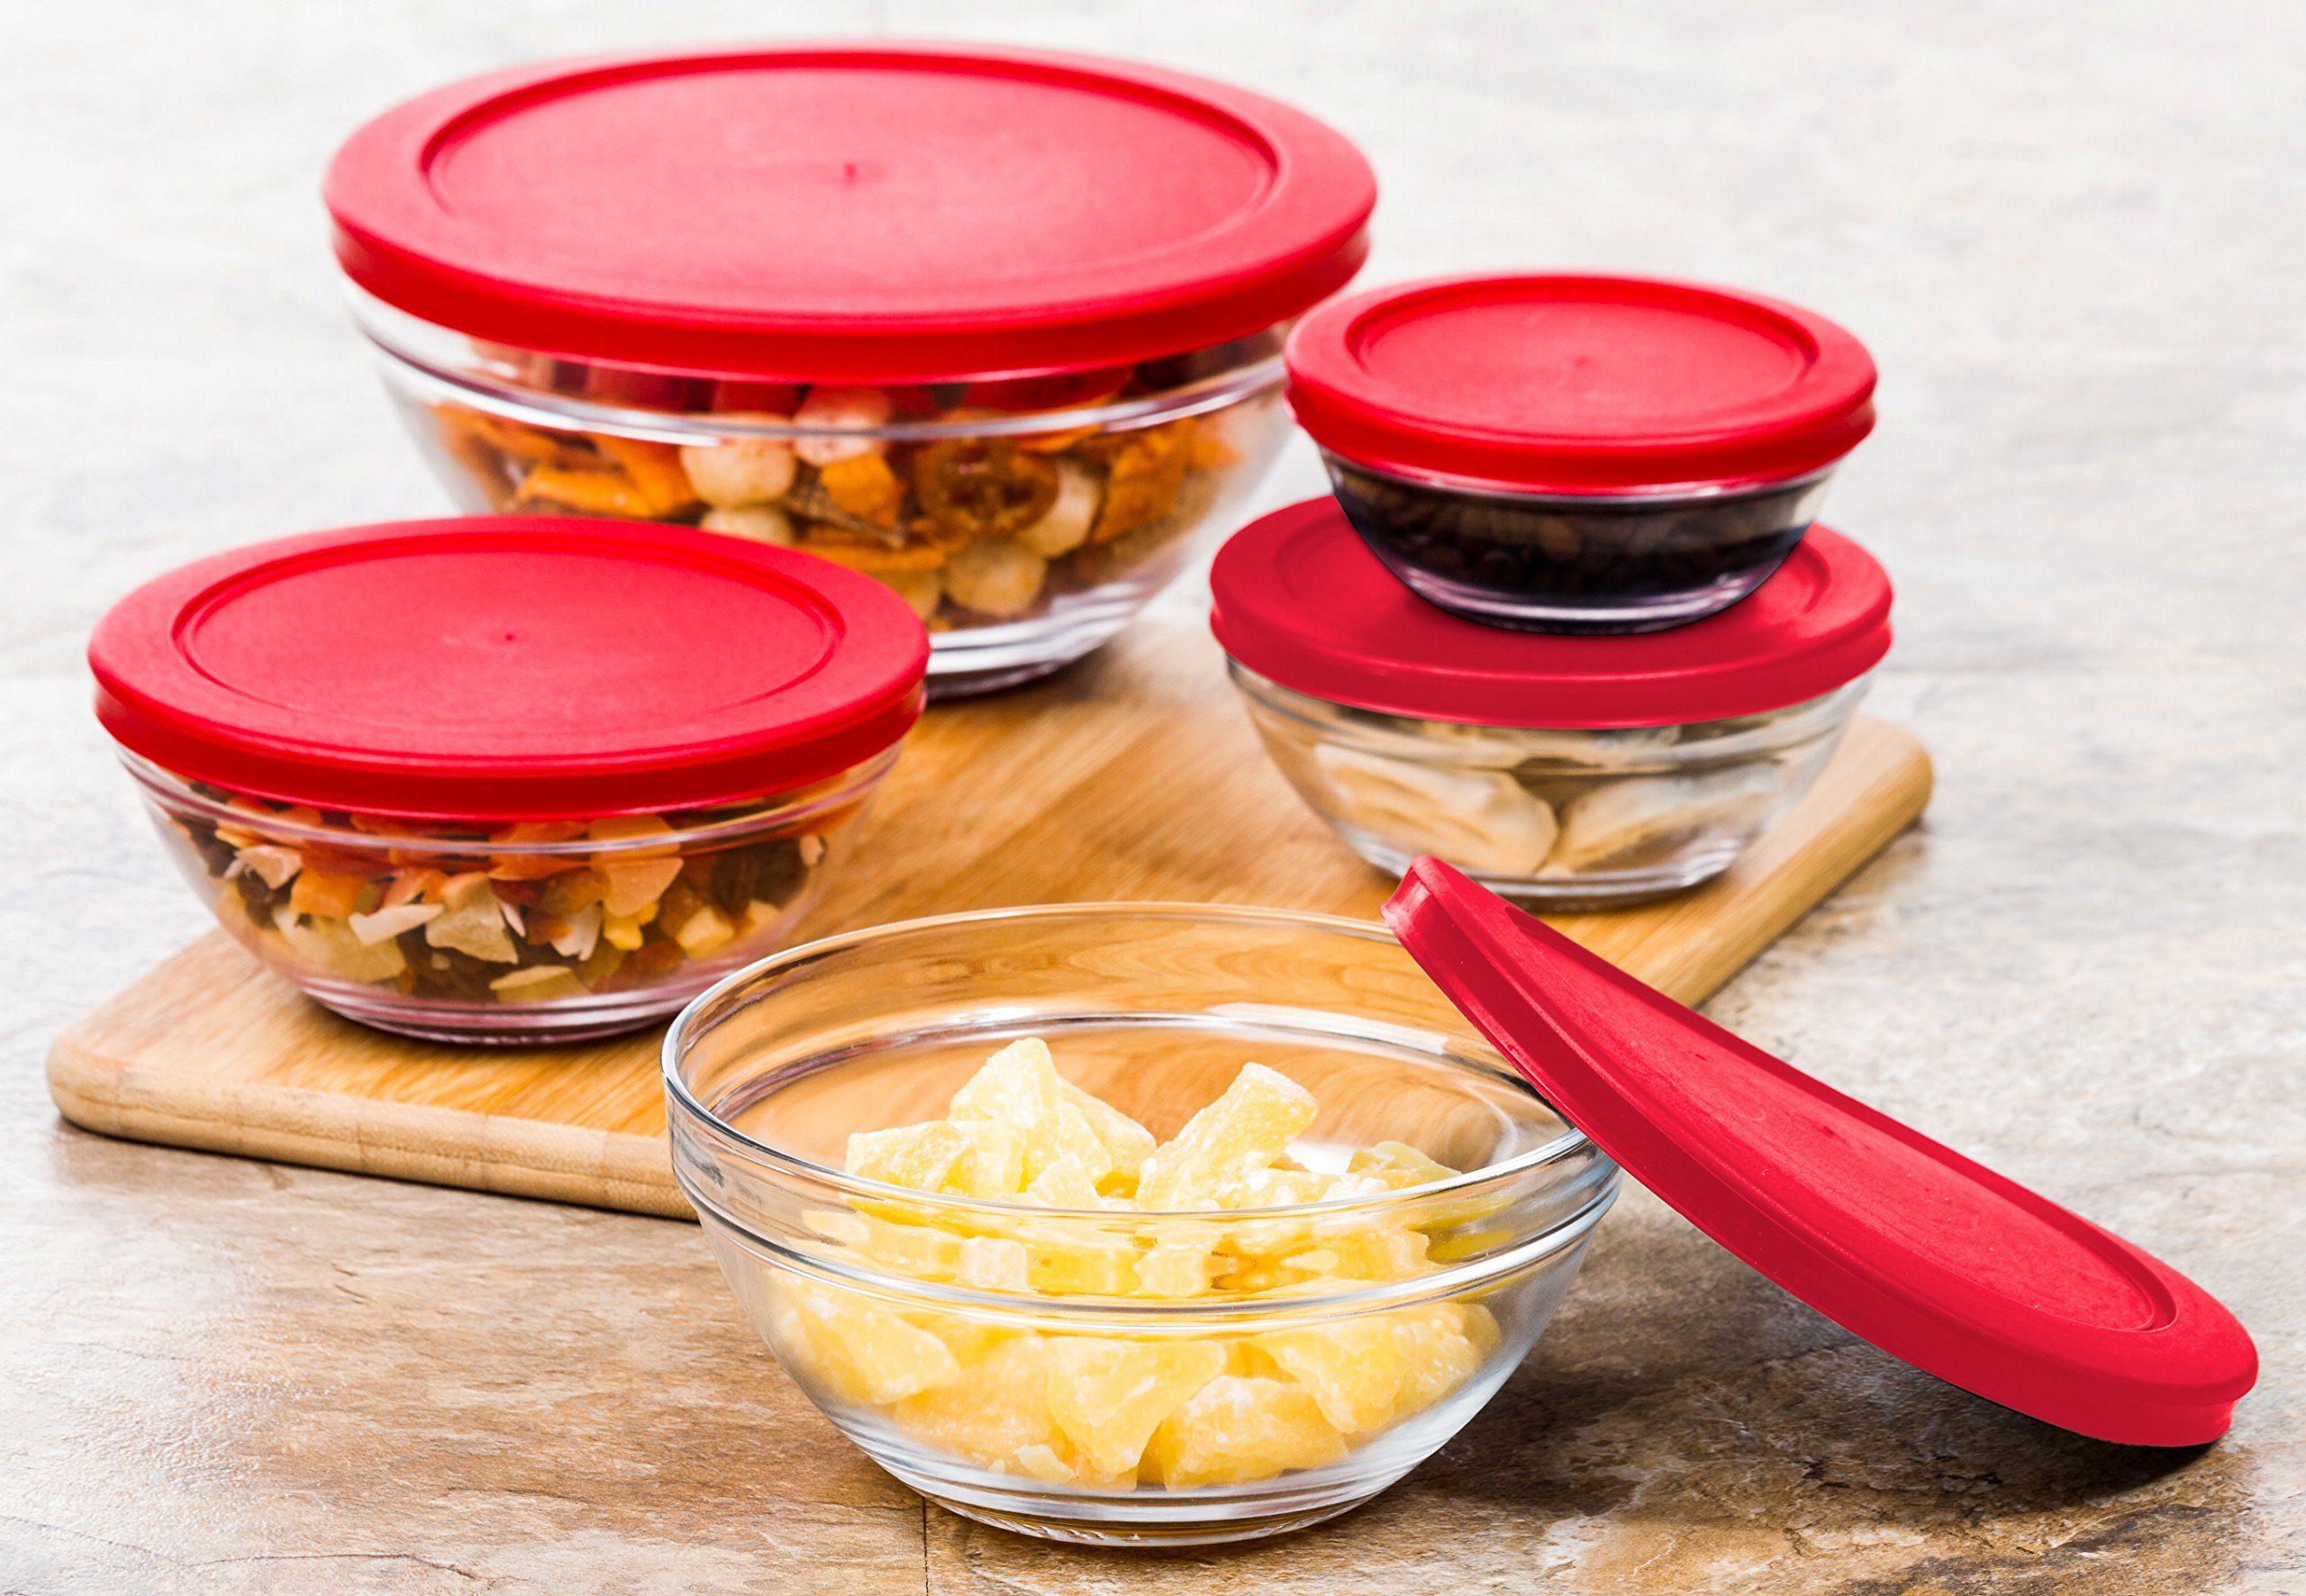 Multi Purpose Glass Bowls Food Storage Containers Set - 10 Pc Glass Kitchen Containers w/ Snap Tight Lids (Red)